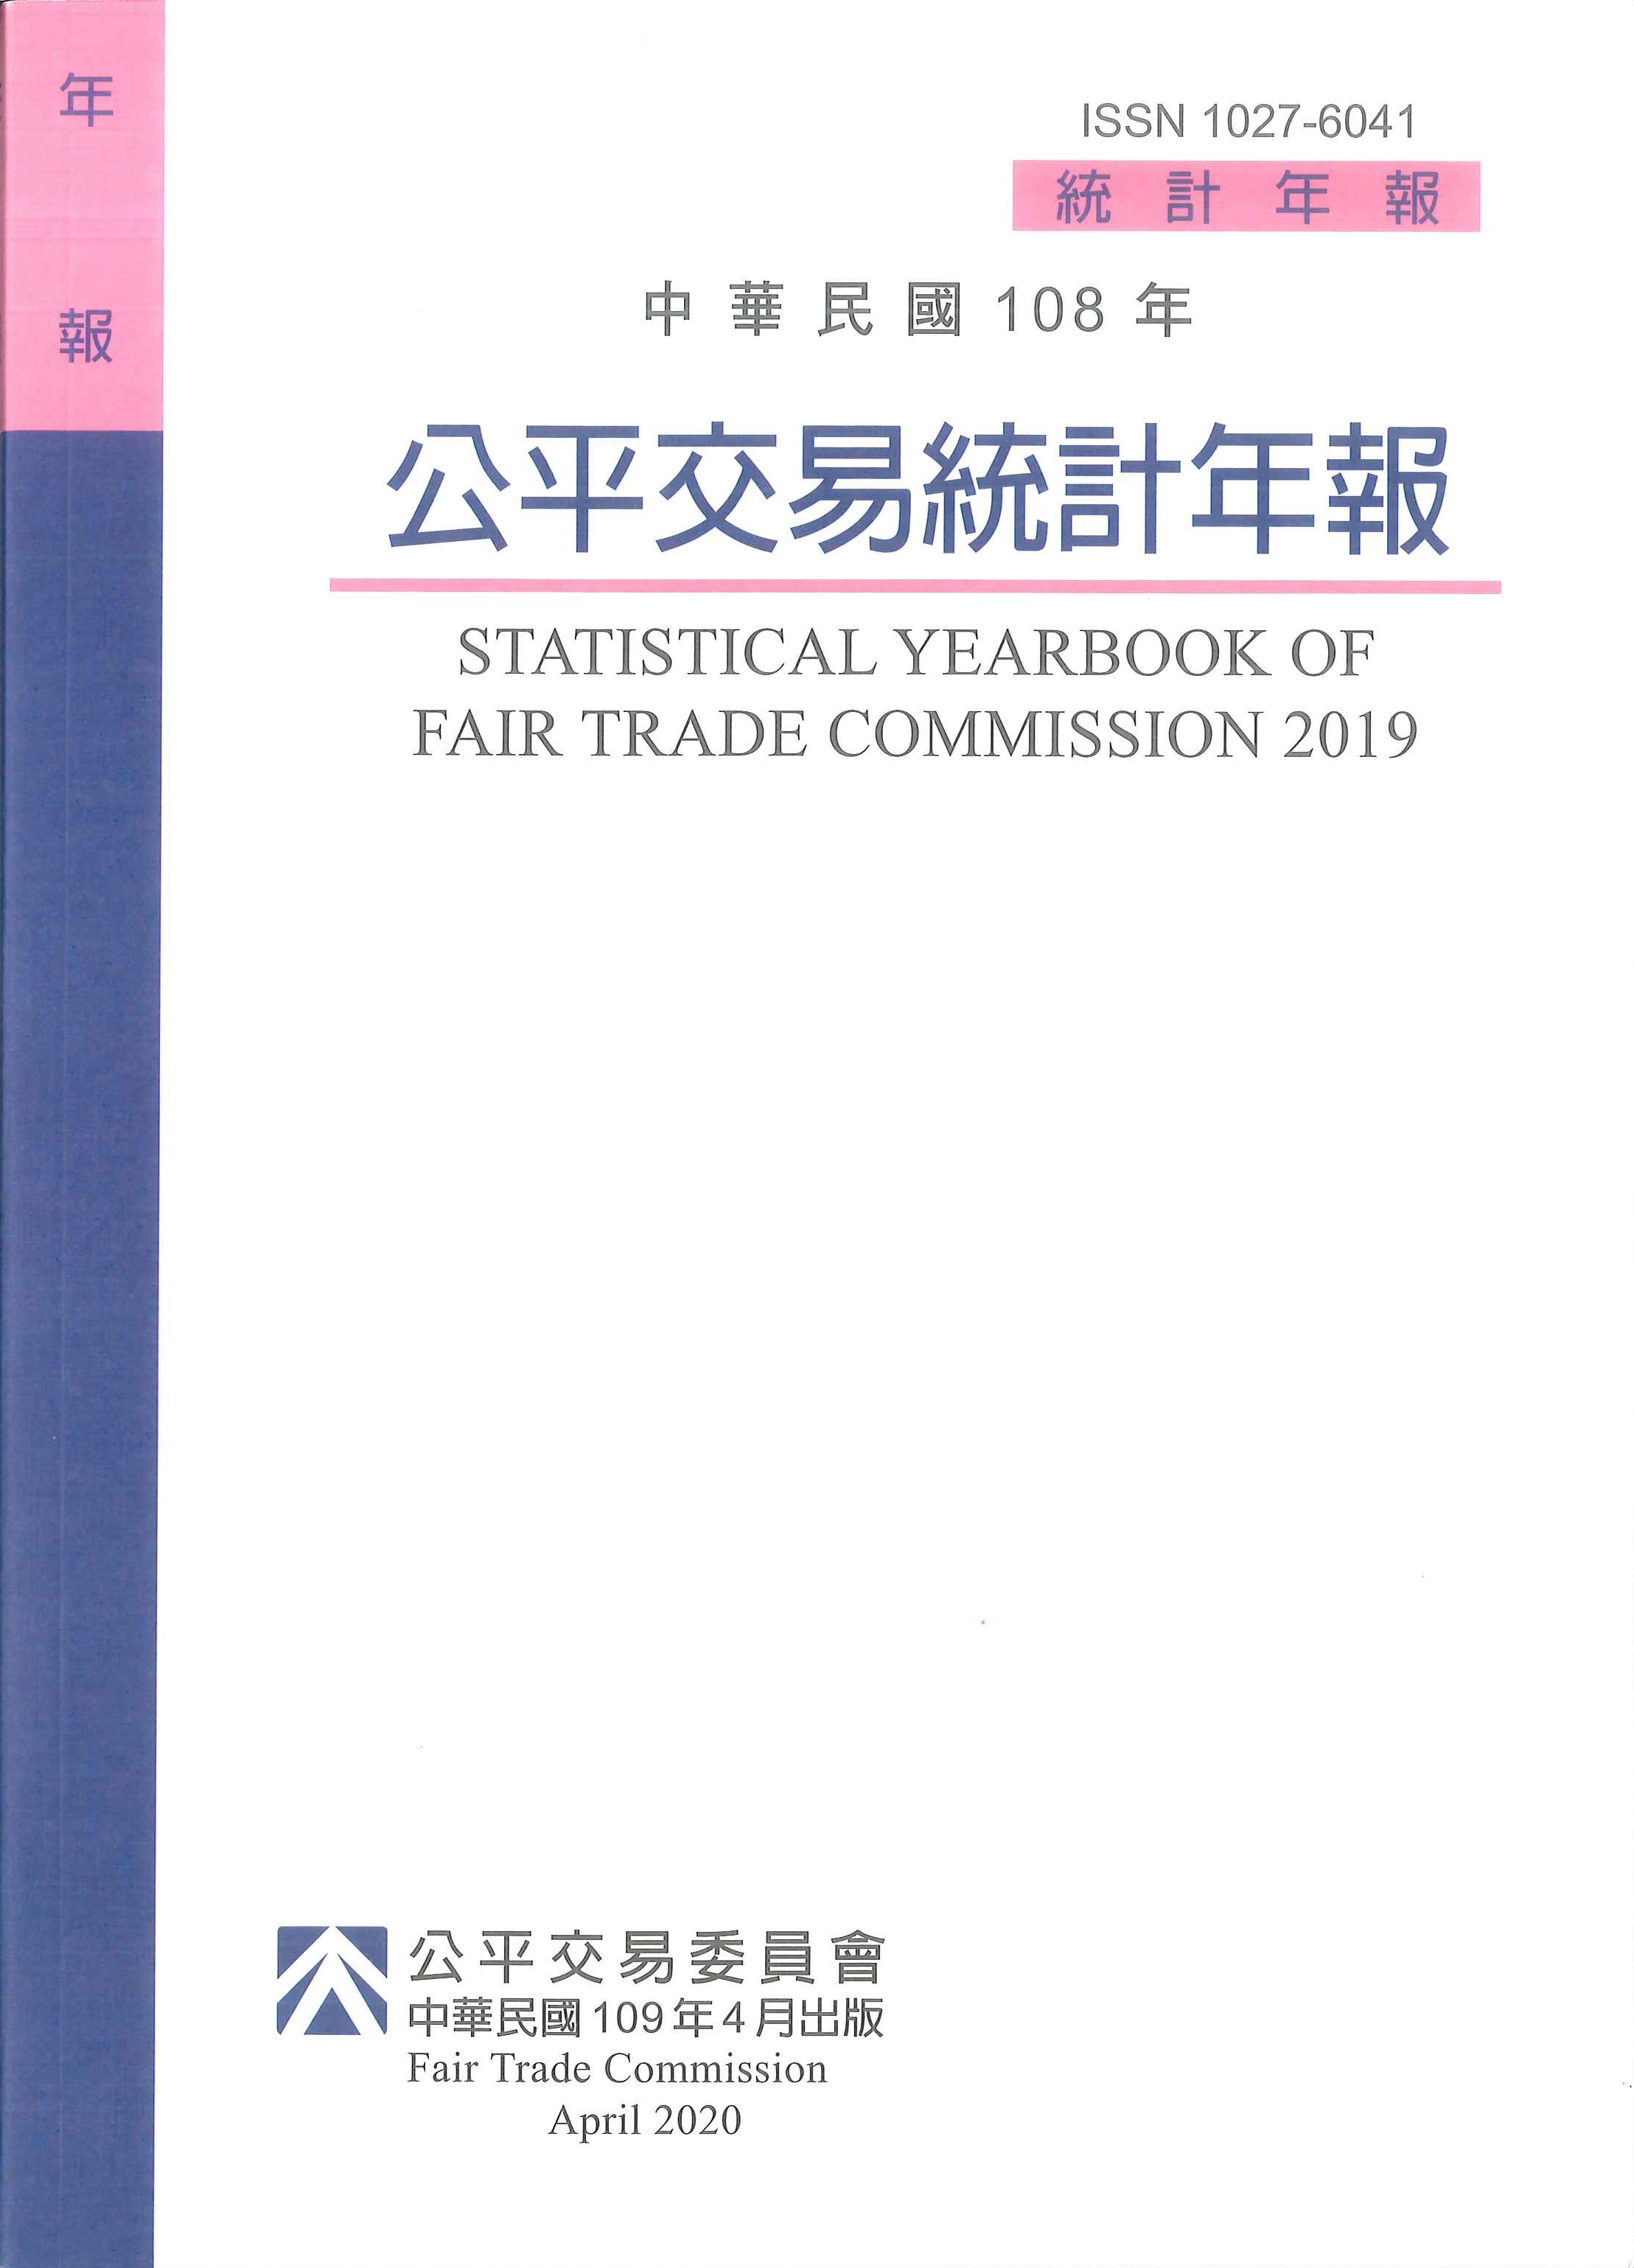 公平交易統計年報=Statistical yearbook of fair trade commission